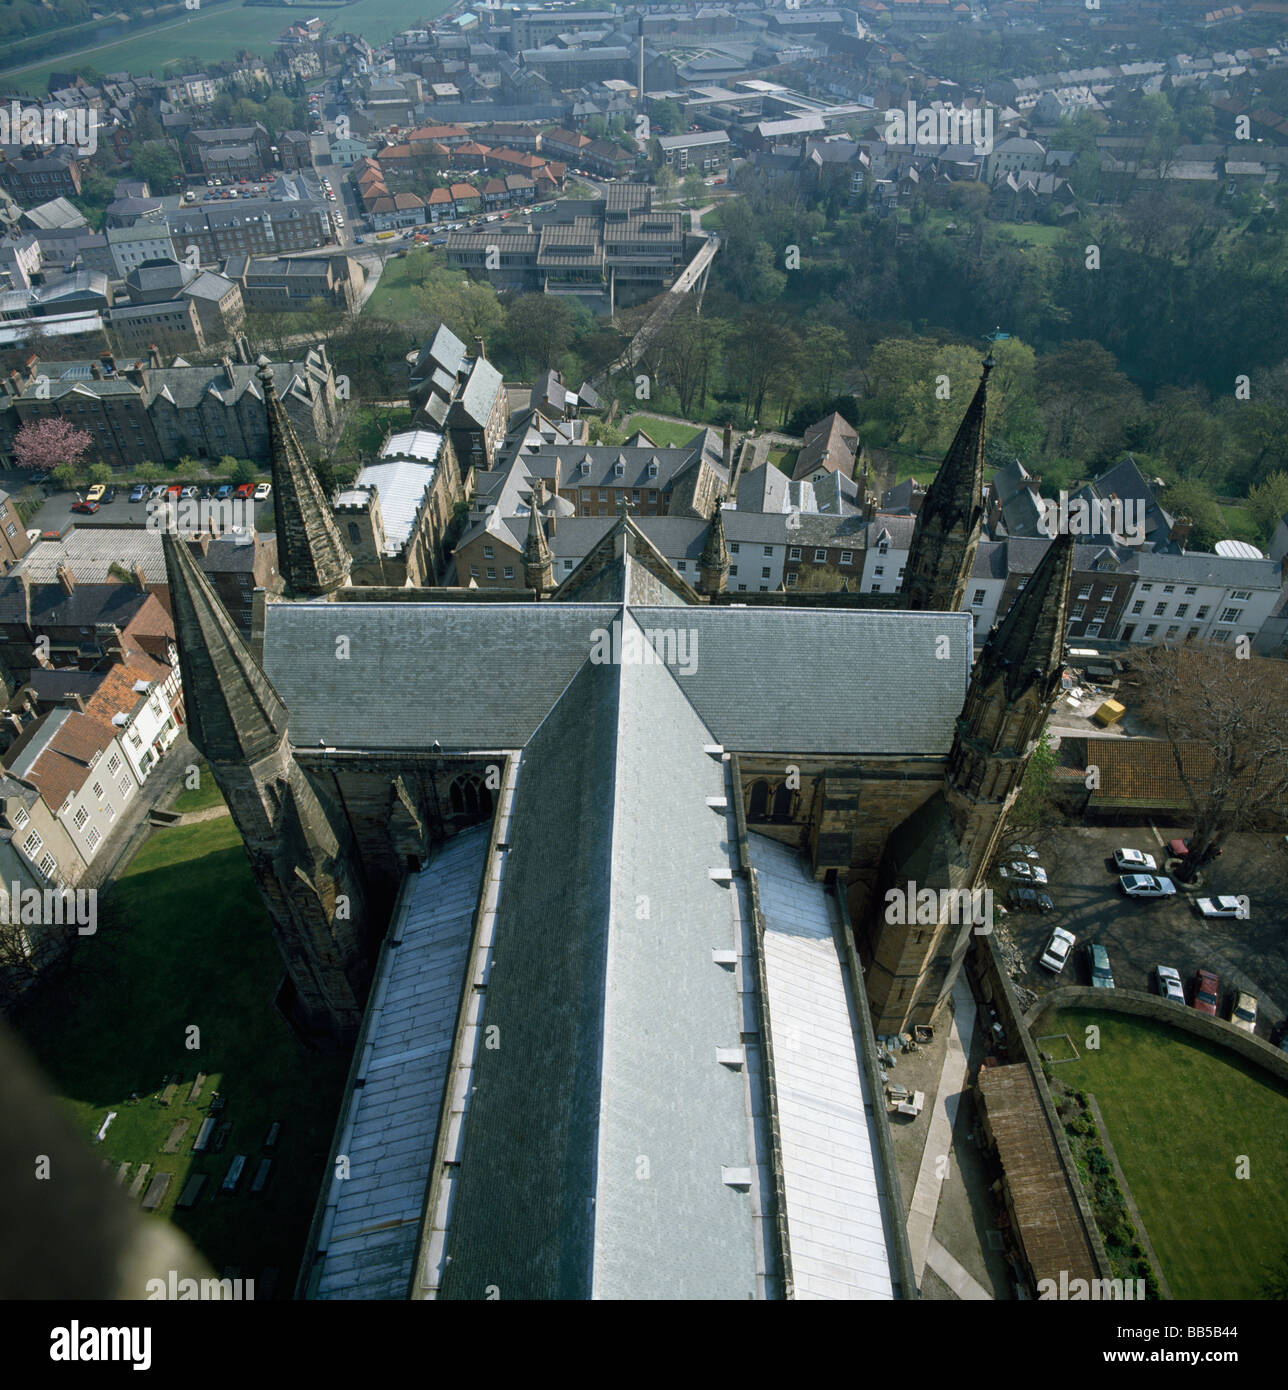 Durham Cathedral View Of Choir Roof From Top Of The Tower